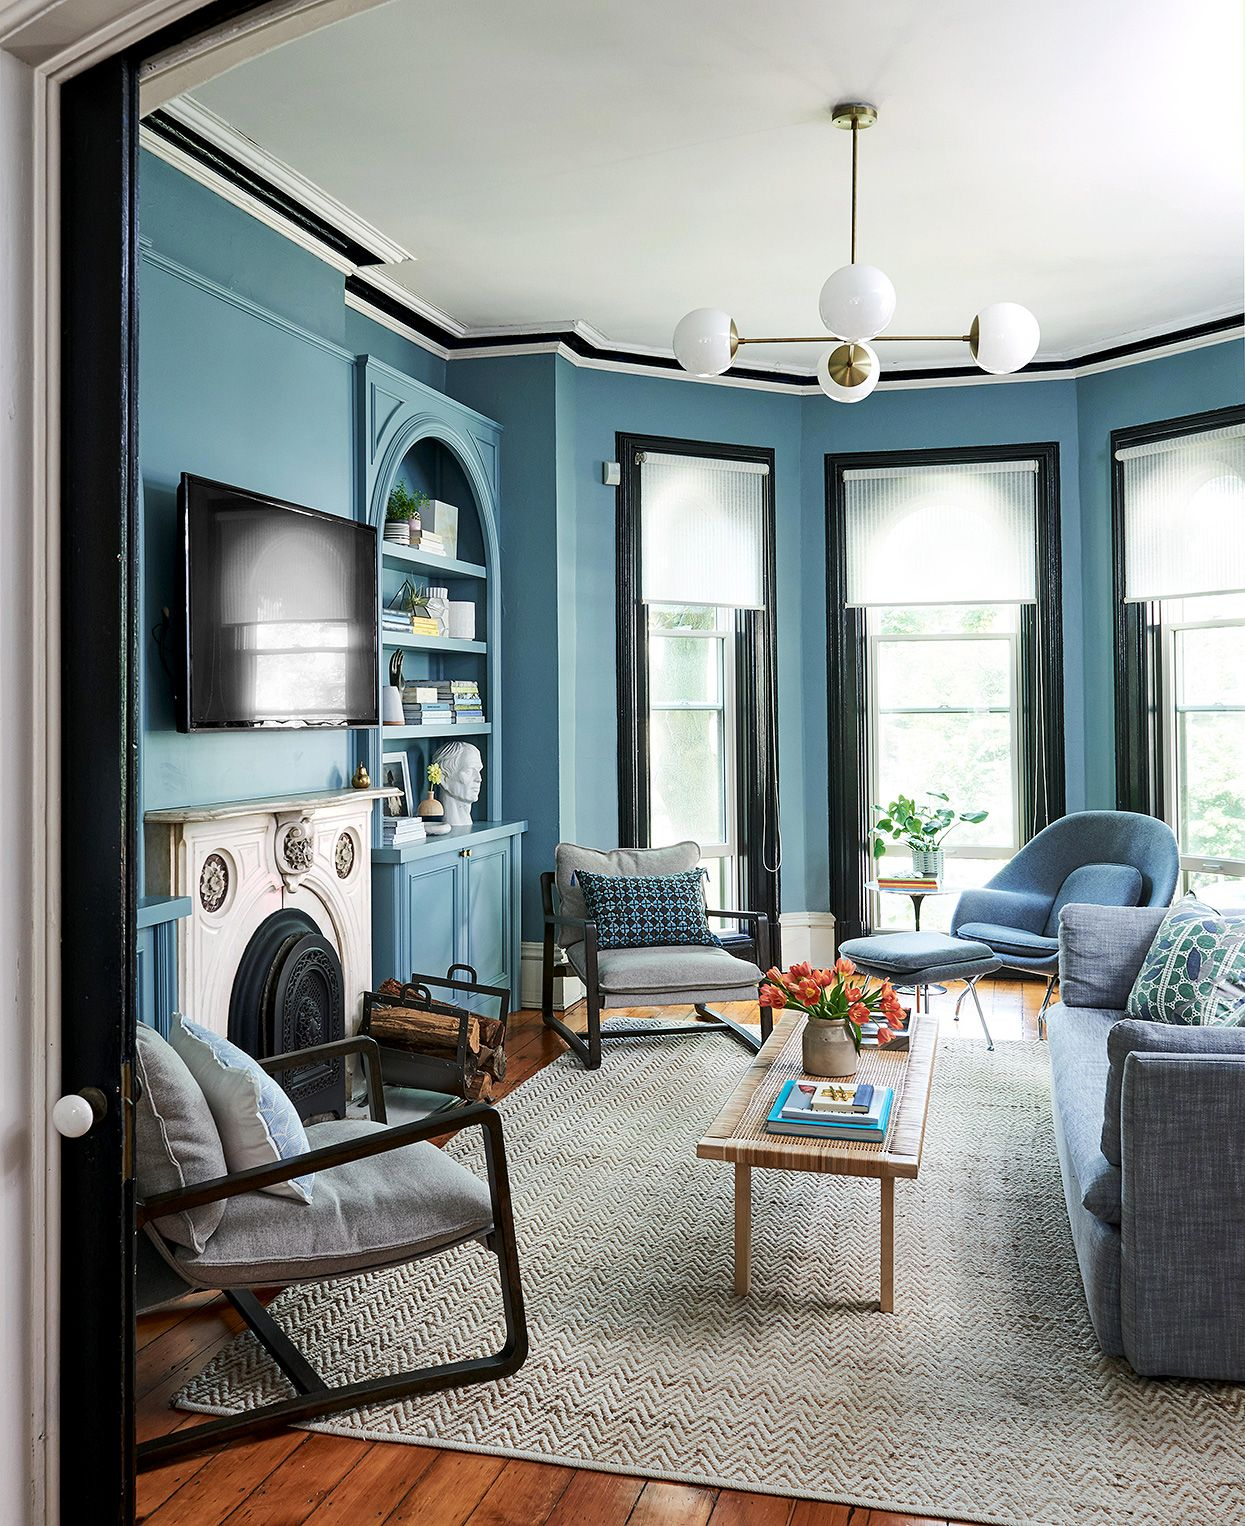 Bold Blues And Patterned Wallpaper Make This 19th Century H